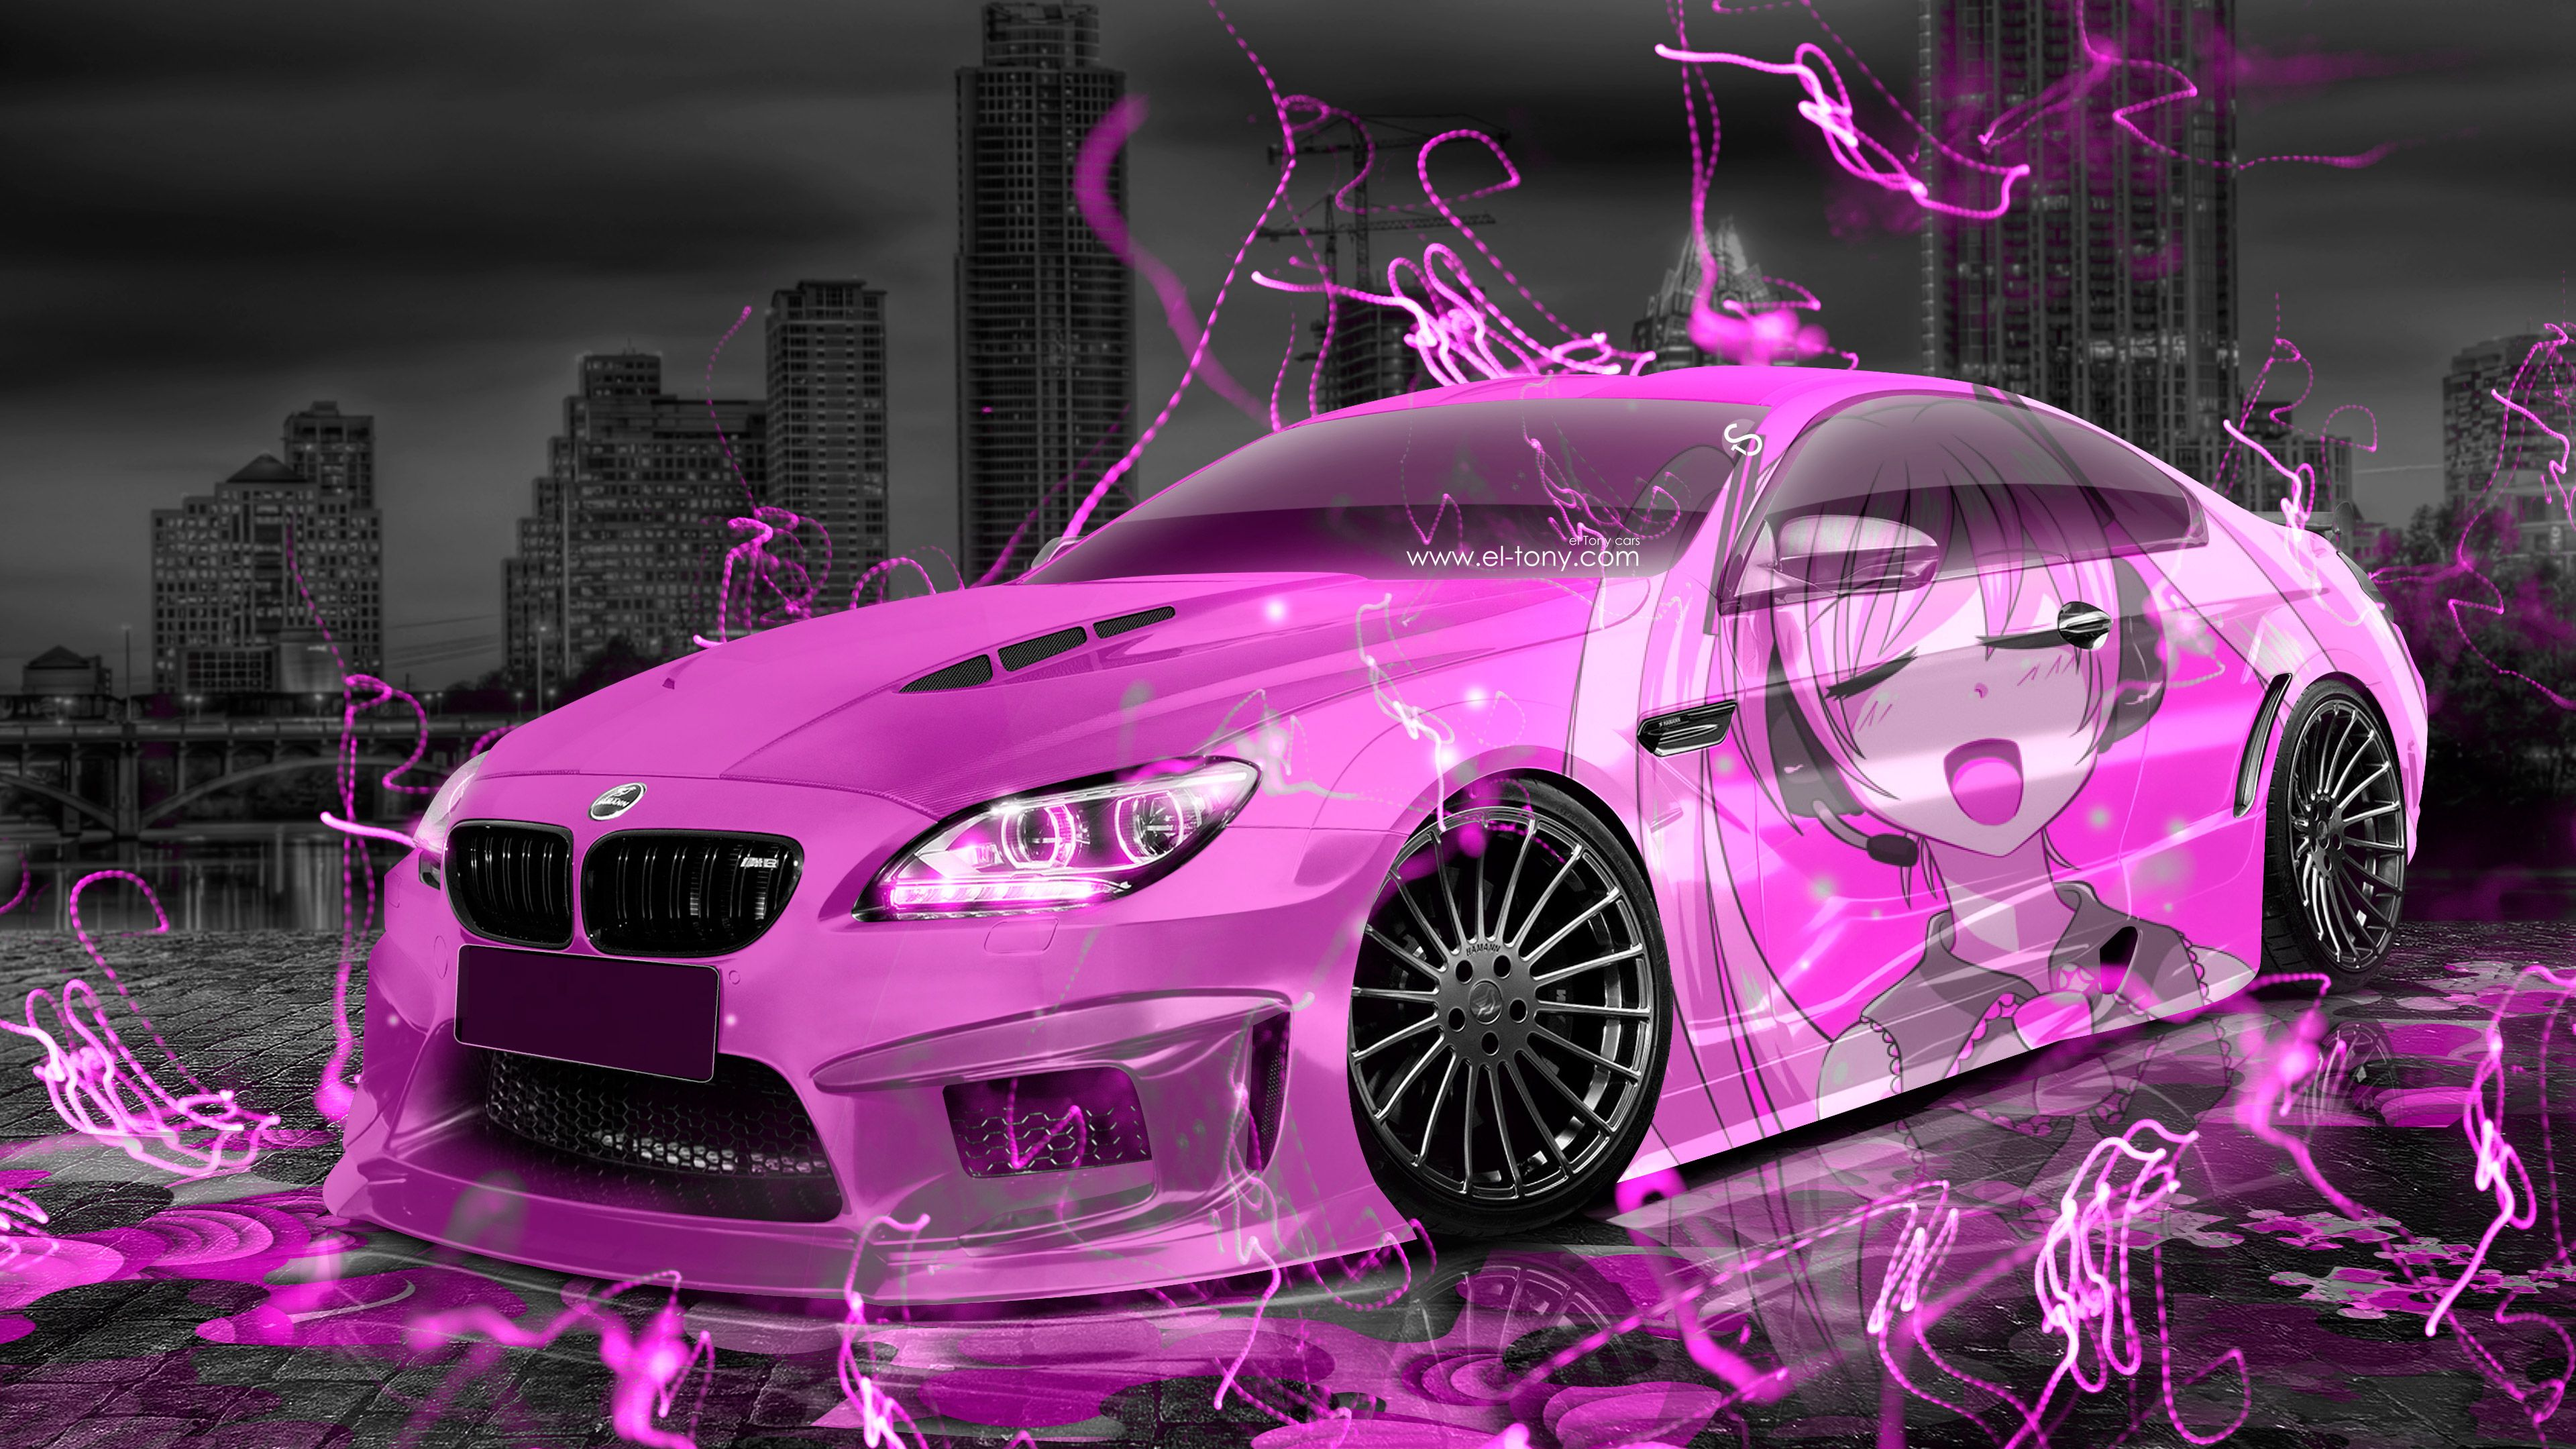 Genial BMW M6 Hamann Tuning 3D Anime Girl Music